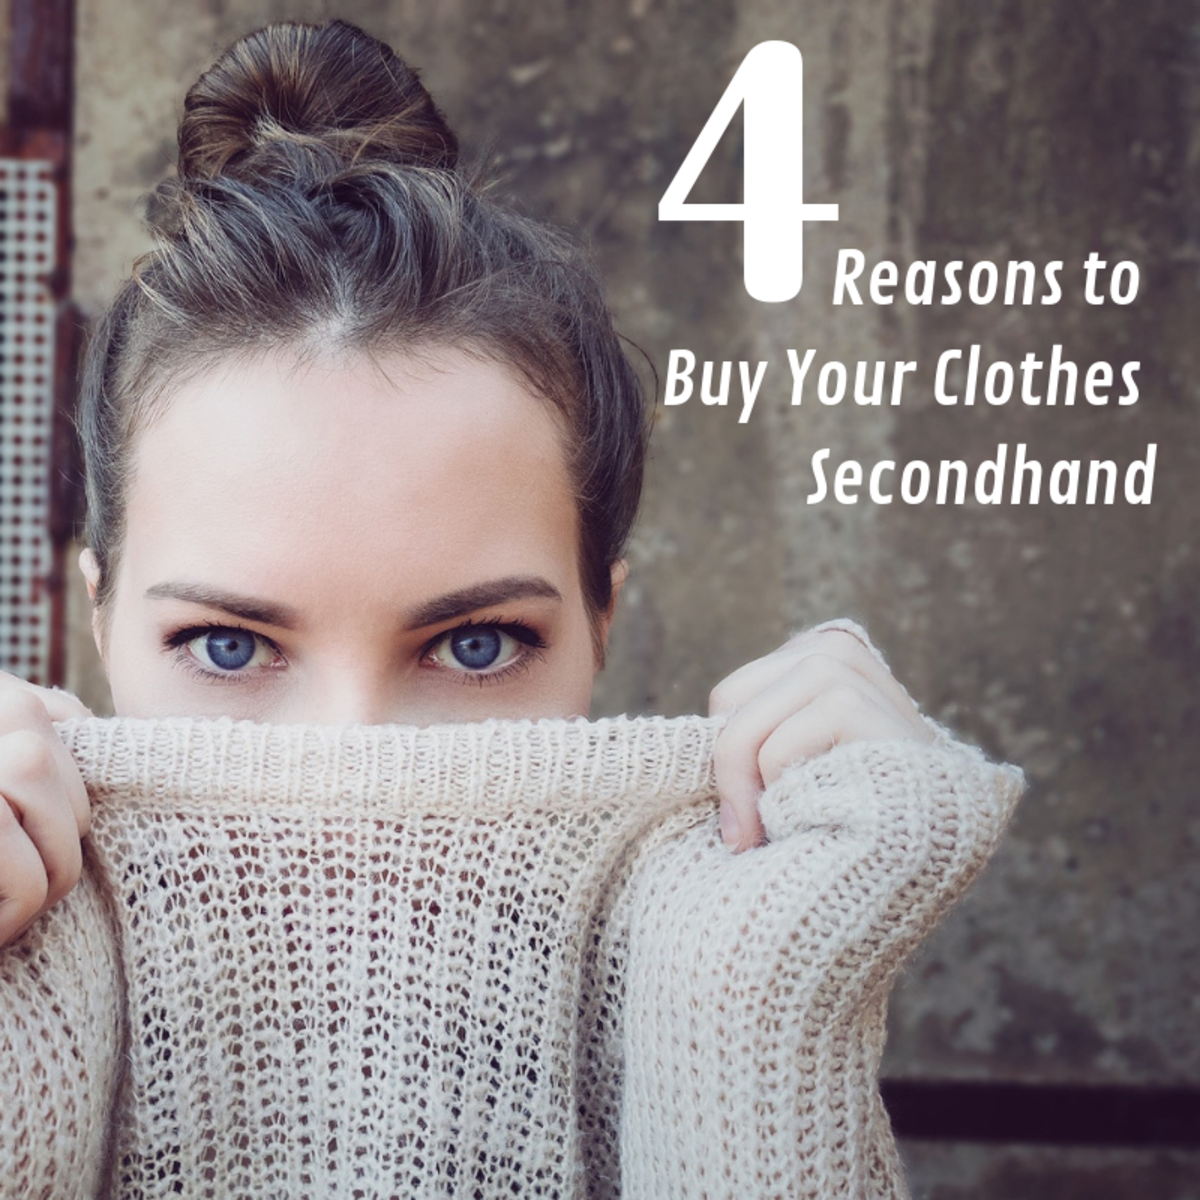 Buying clothes secondhand has some major advantages.